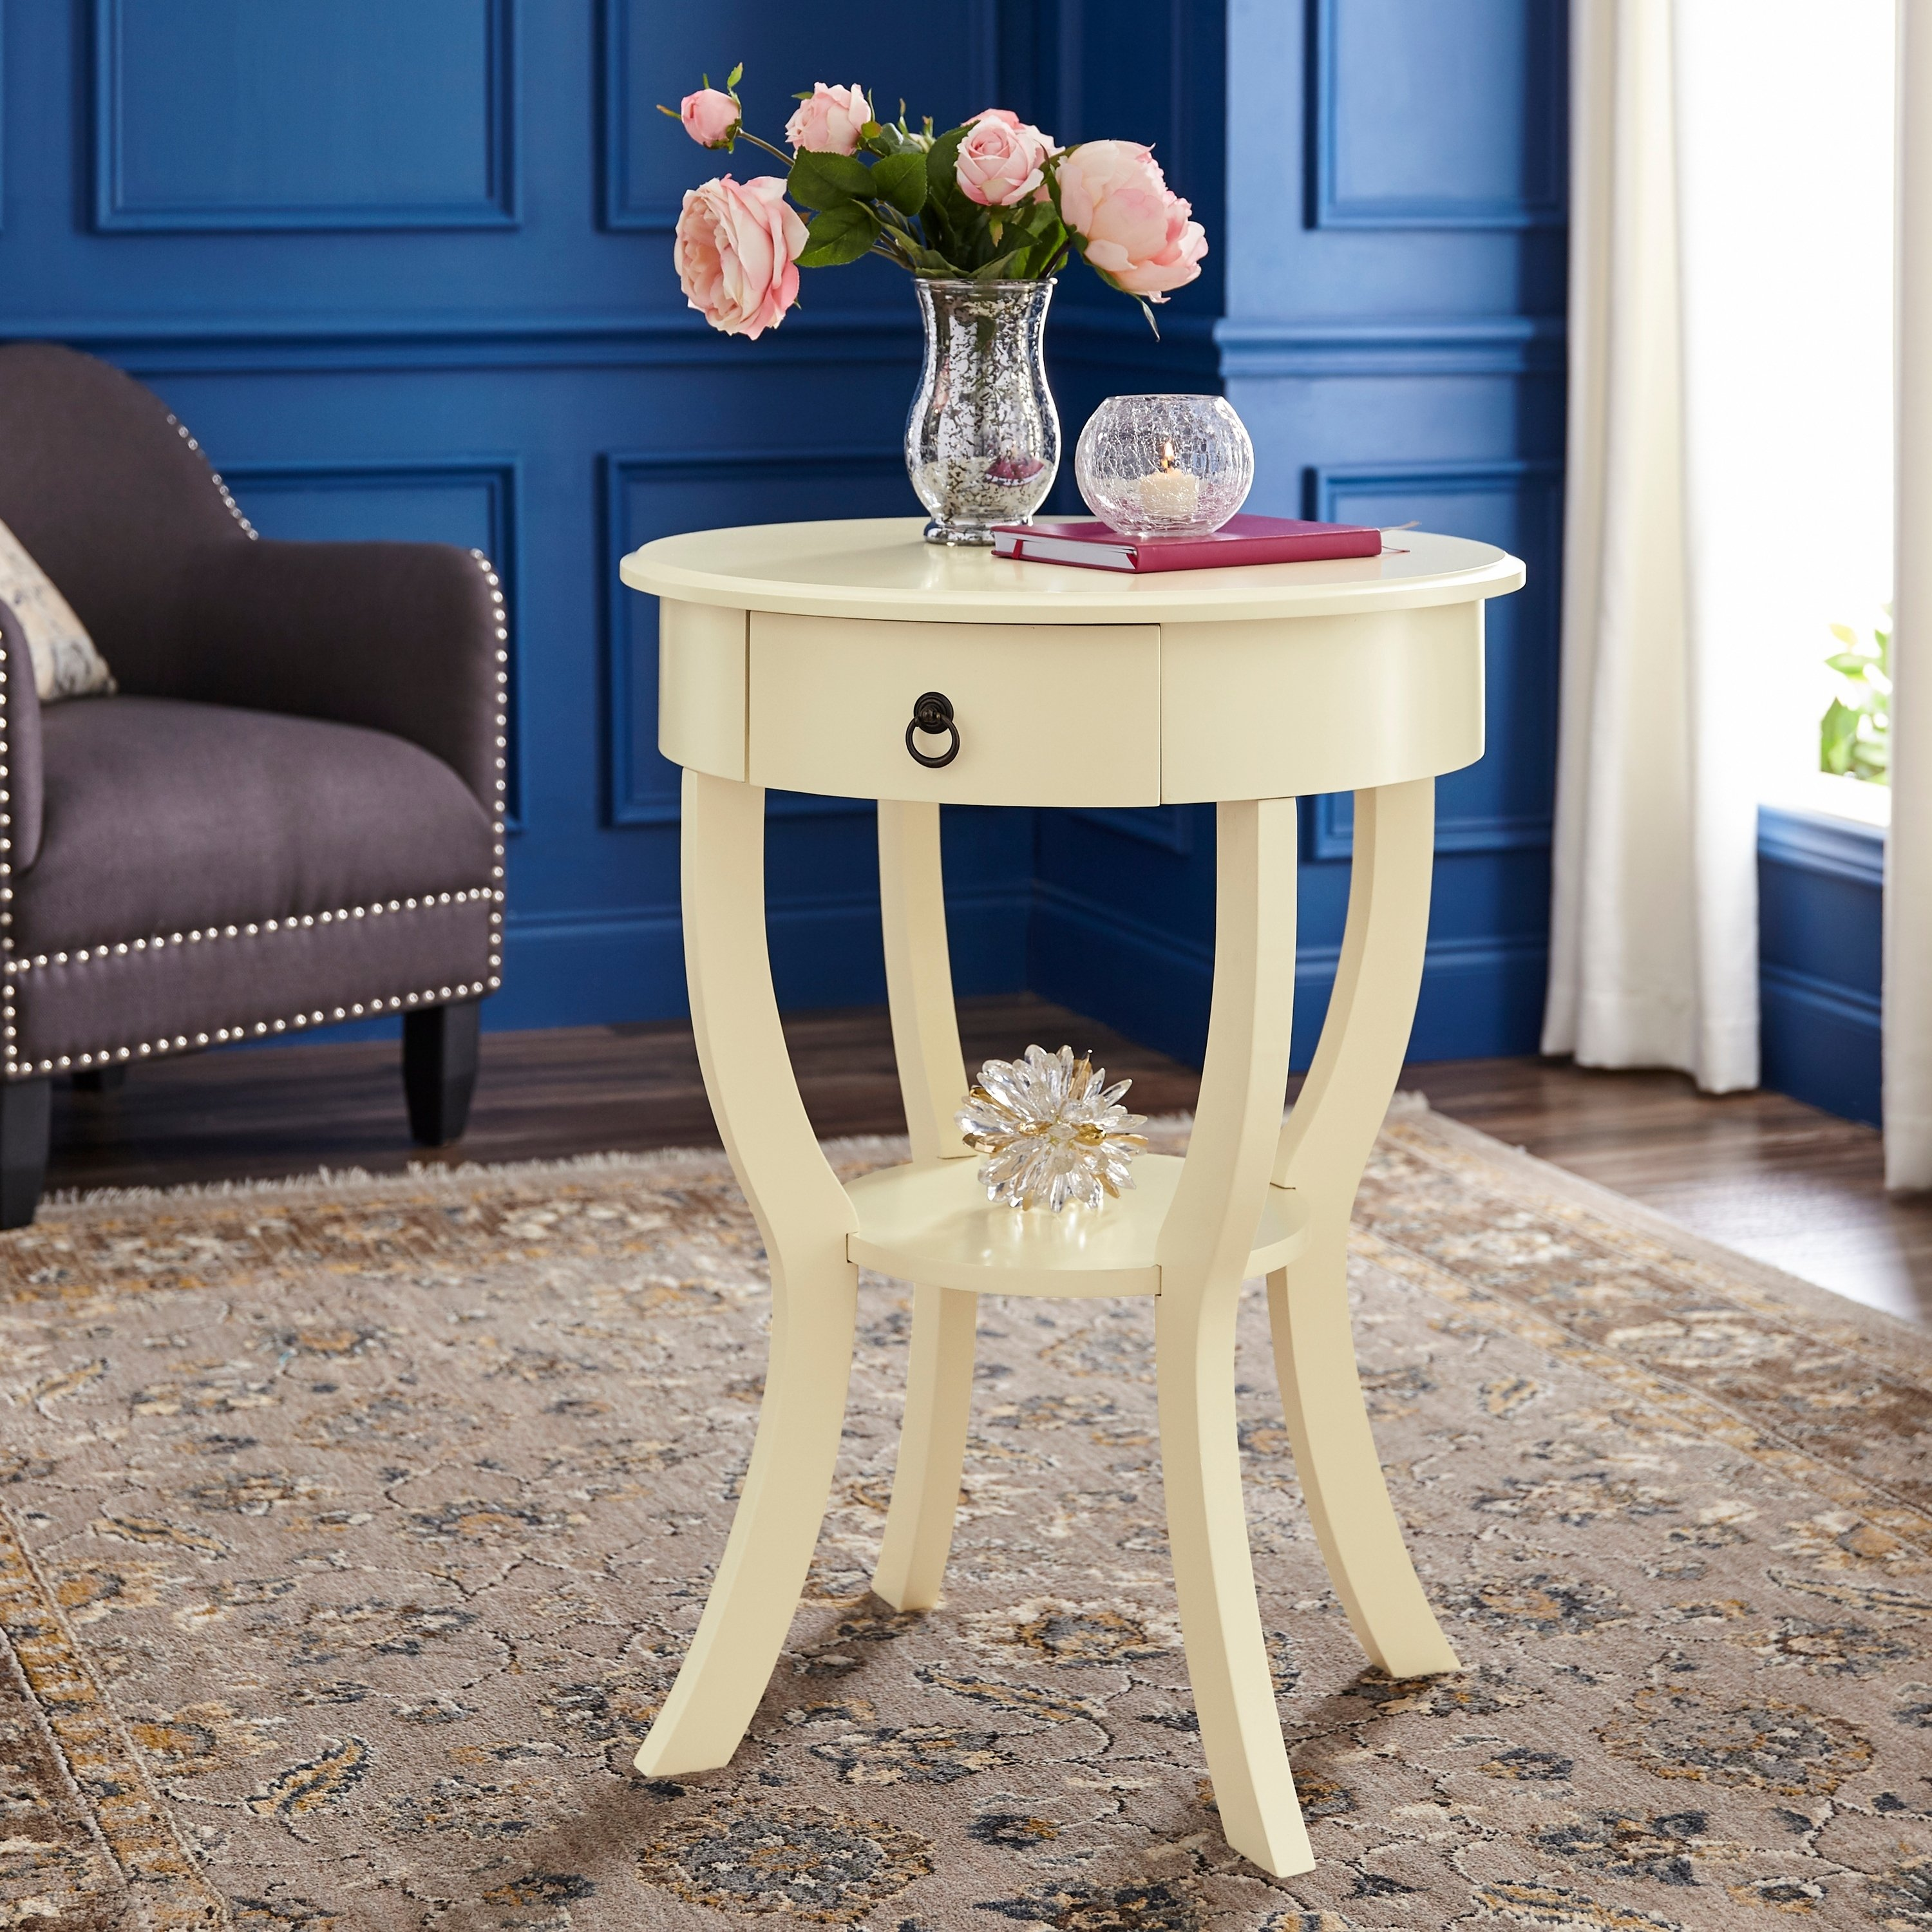 harper blvd lyman tall accent table with storage free wood shipping today red nautical lamp coffee accessories metal drum mini end tables edmonton home goods rugs diy plans room